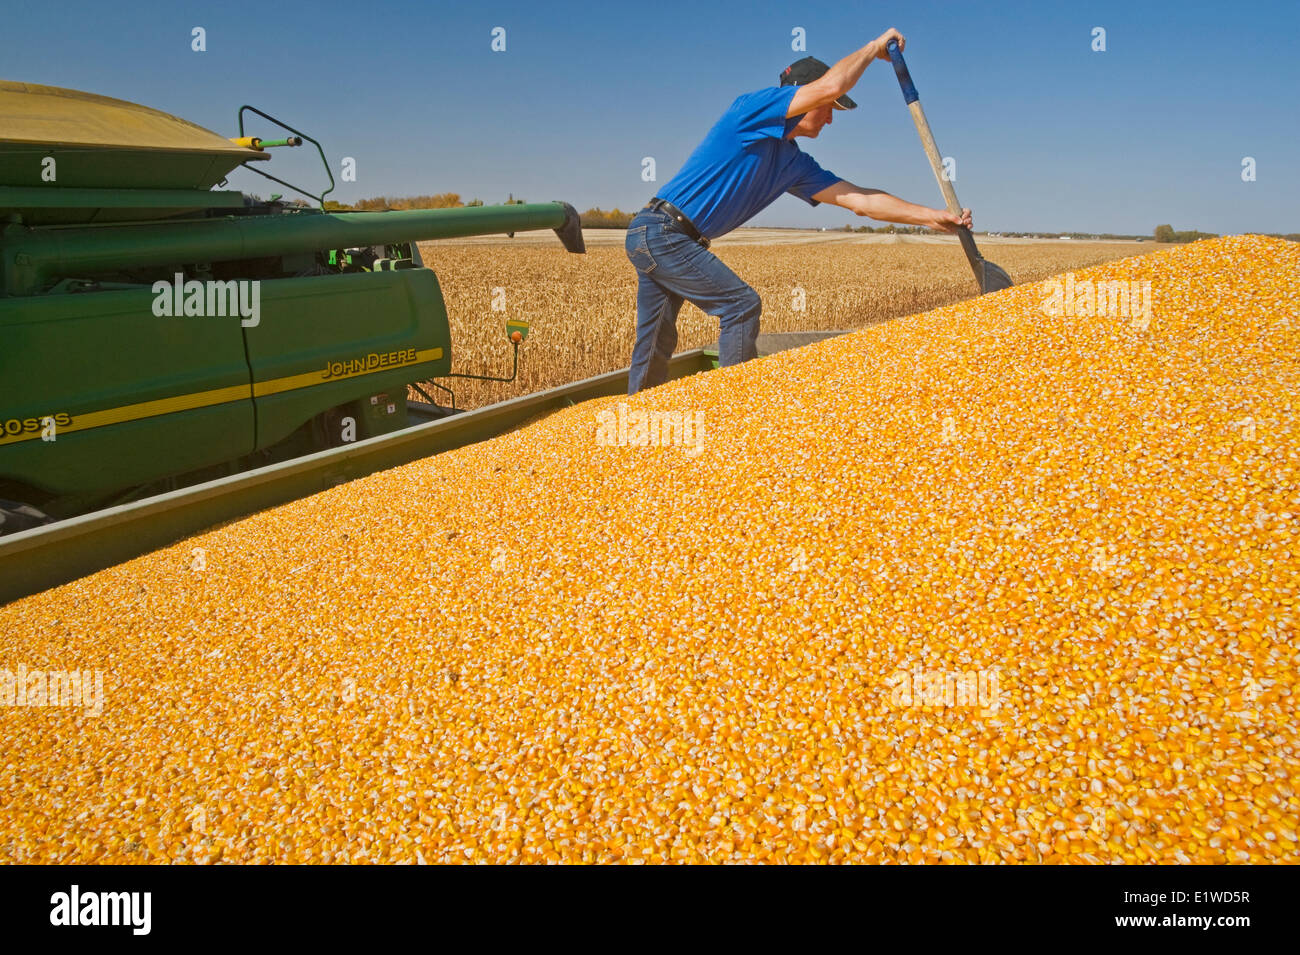 a man in the back of a grain wagon during the grain corn (feed corn) harvest near Niverville, Manitoba, Canada - Stock Image